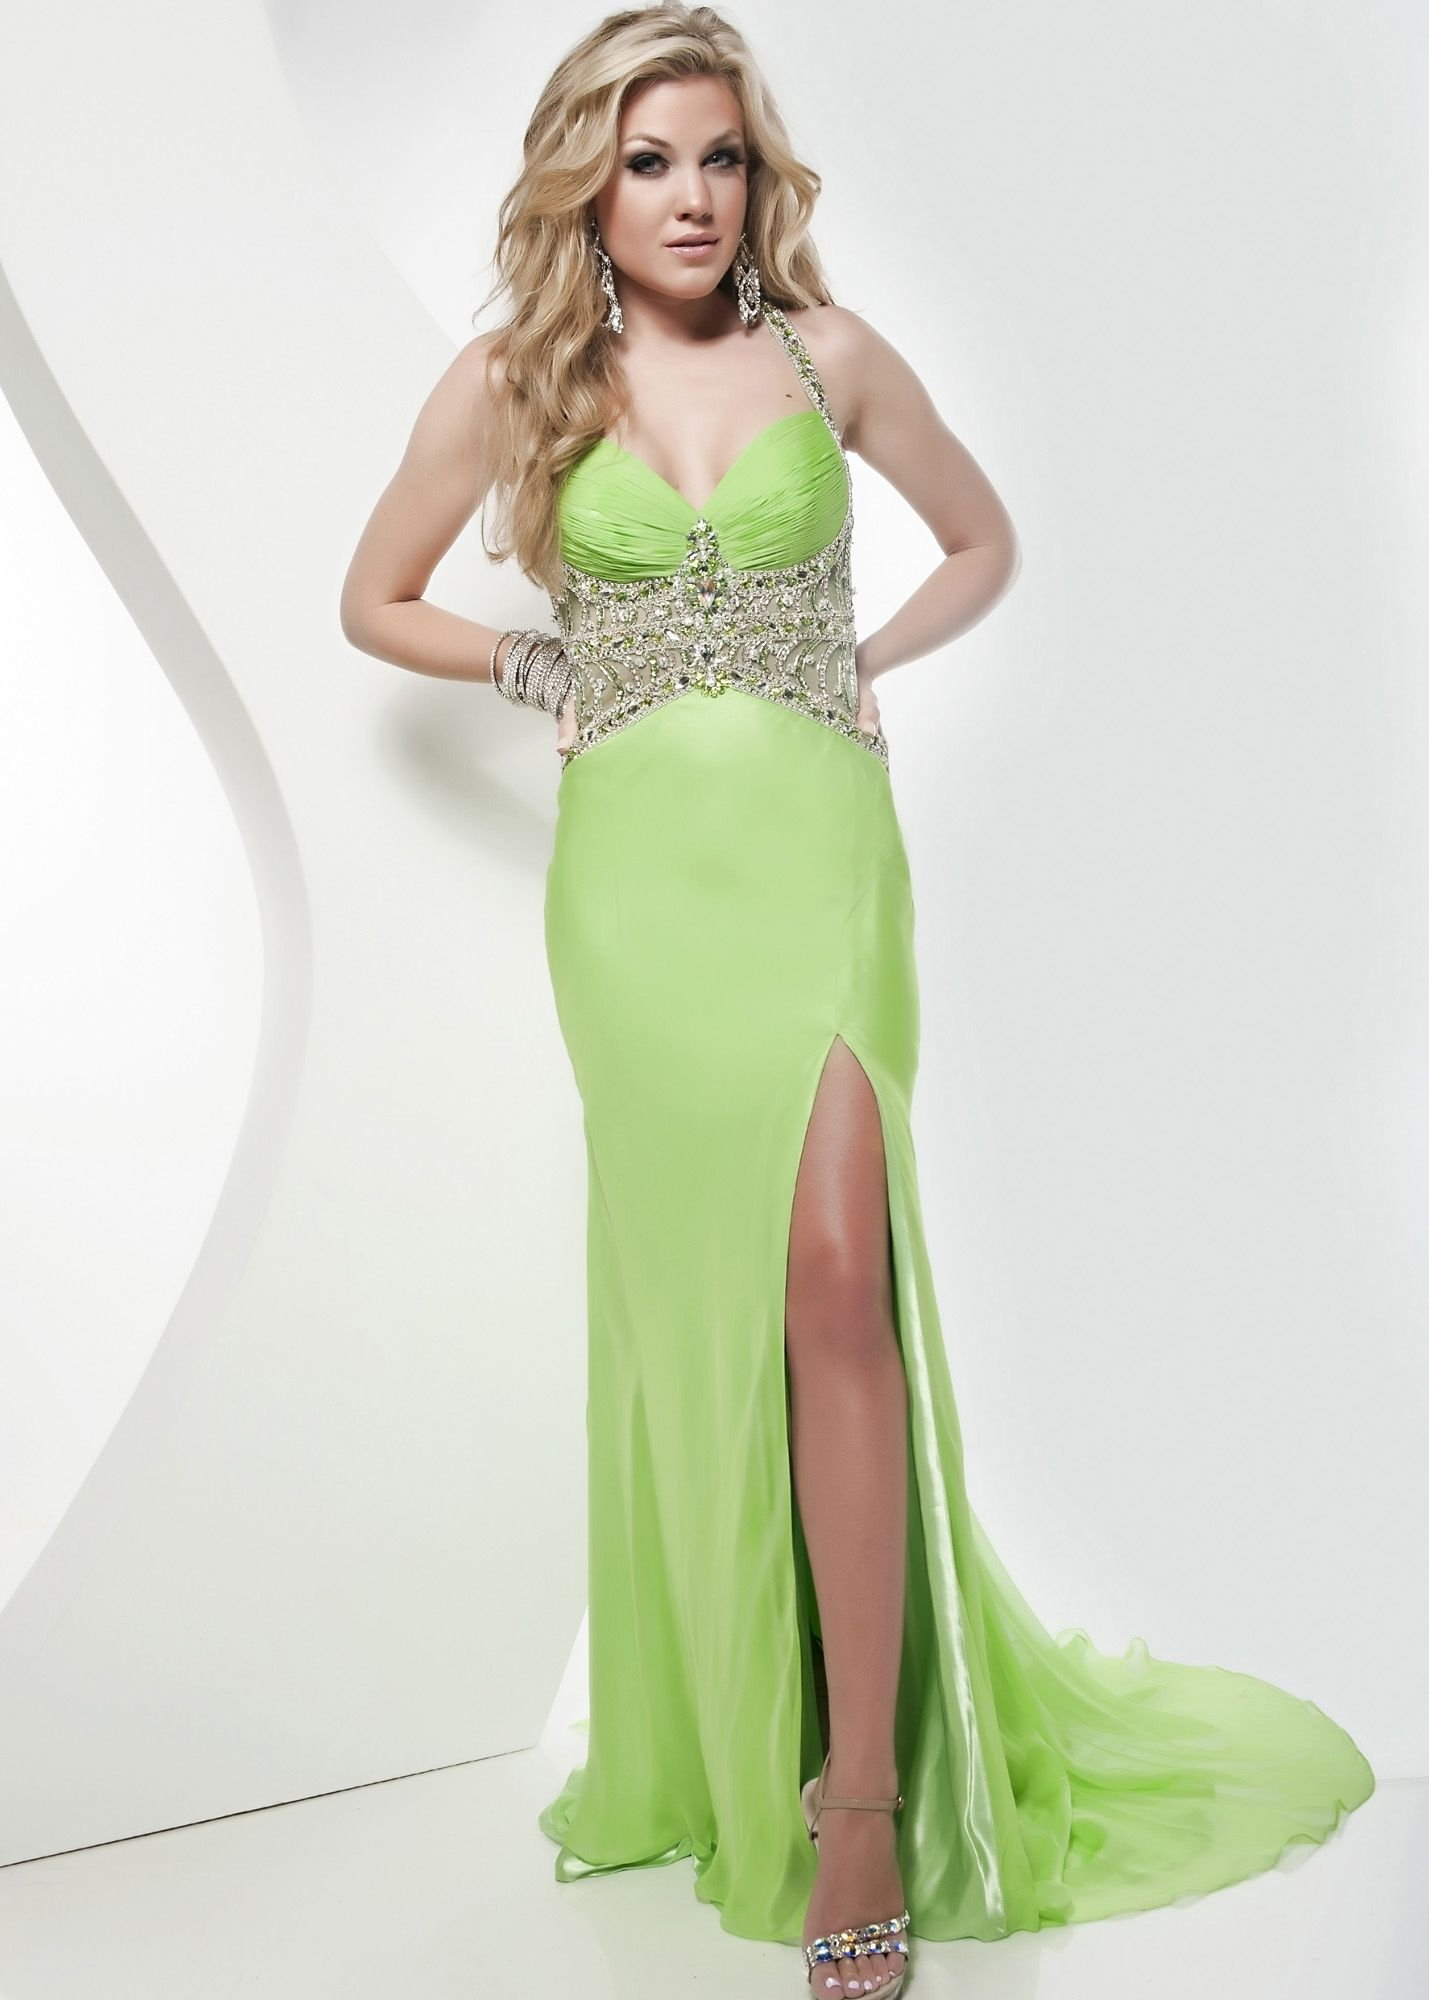 1000  images about Dresses on Pinterest  Lime green dresses Pink ...